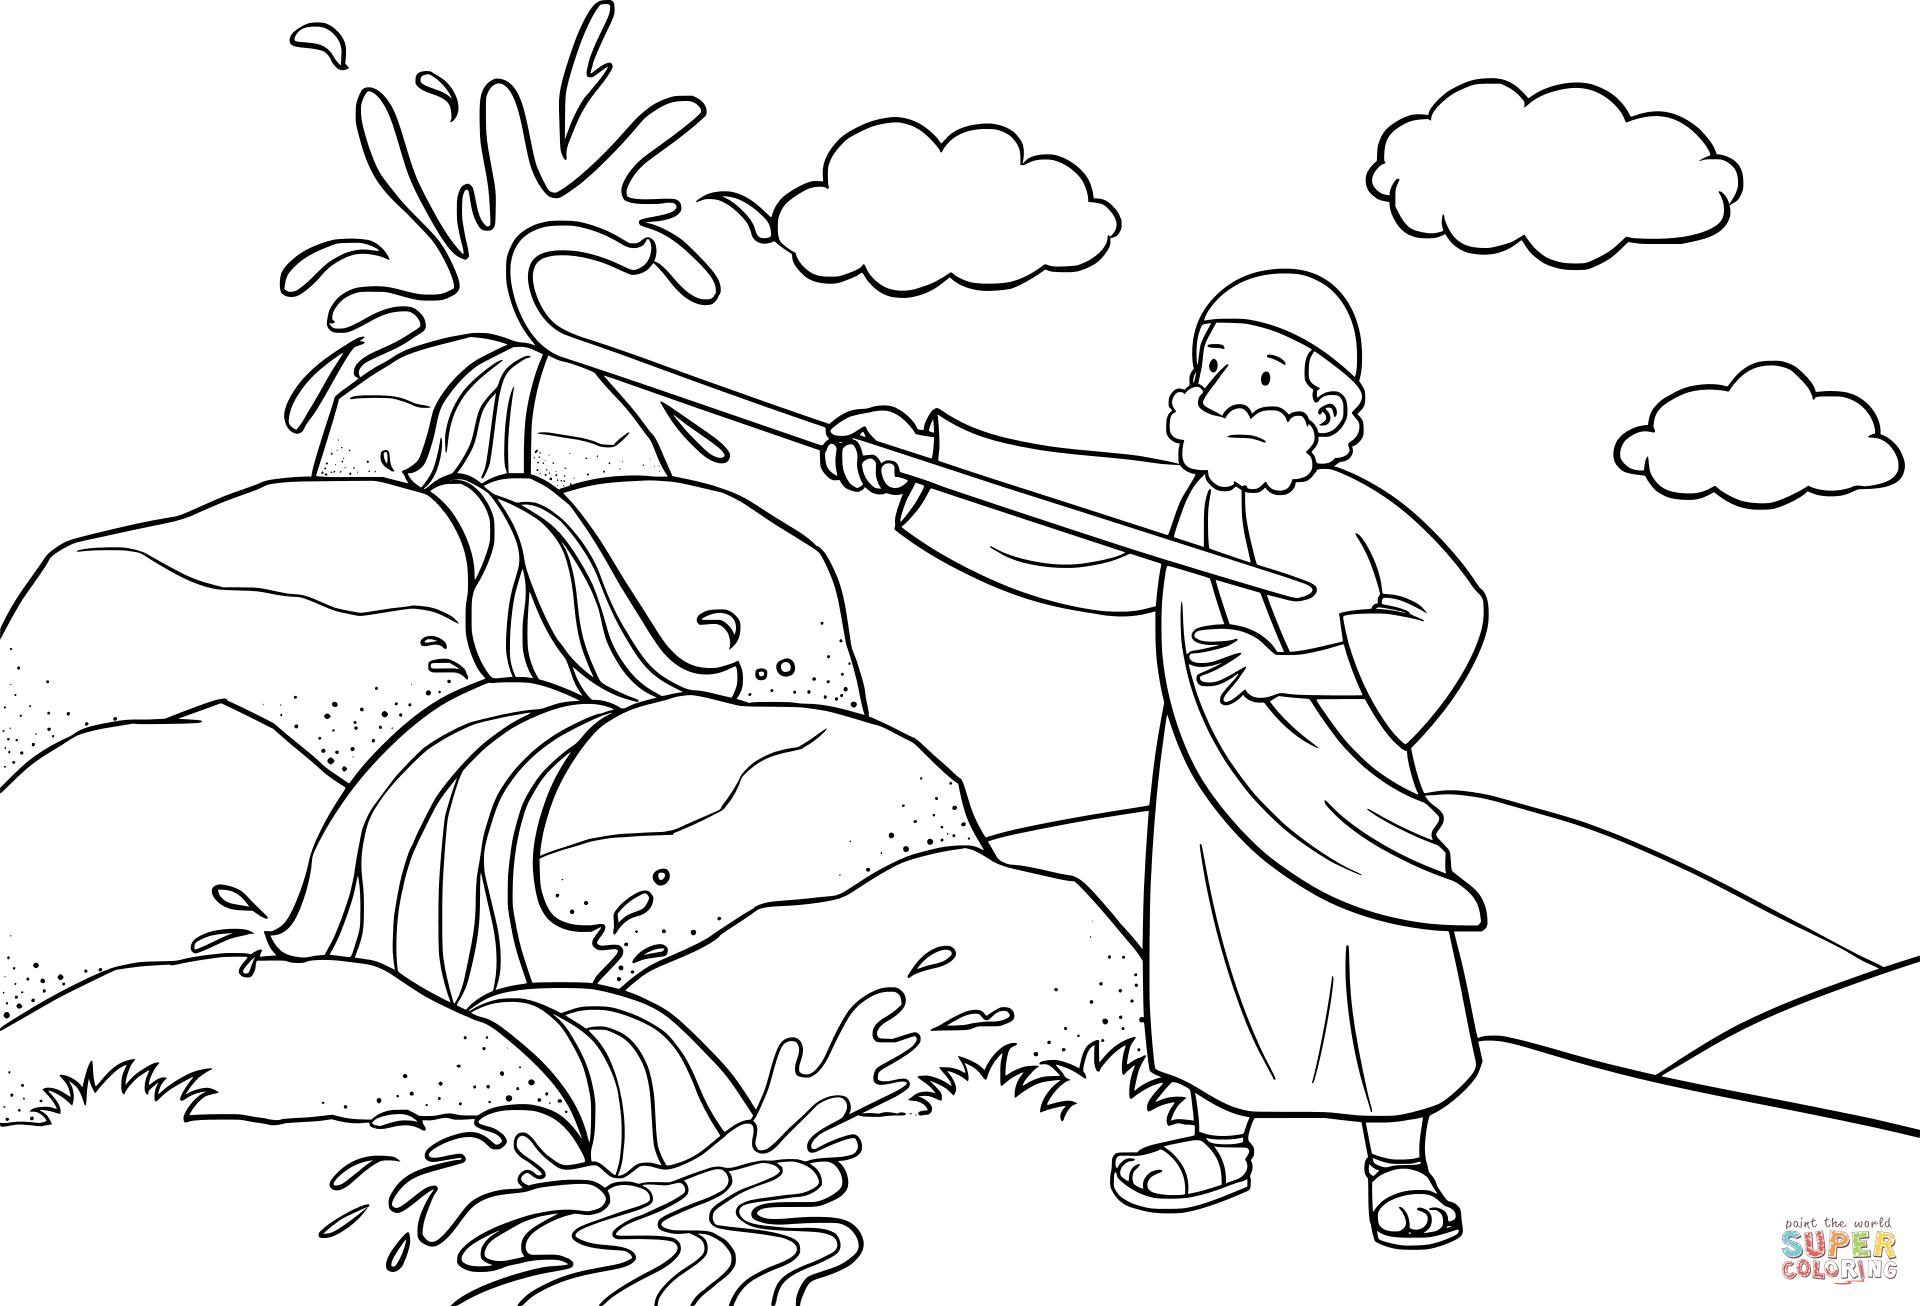 Staff coloring #3, Download drawings